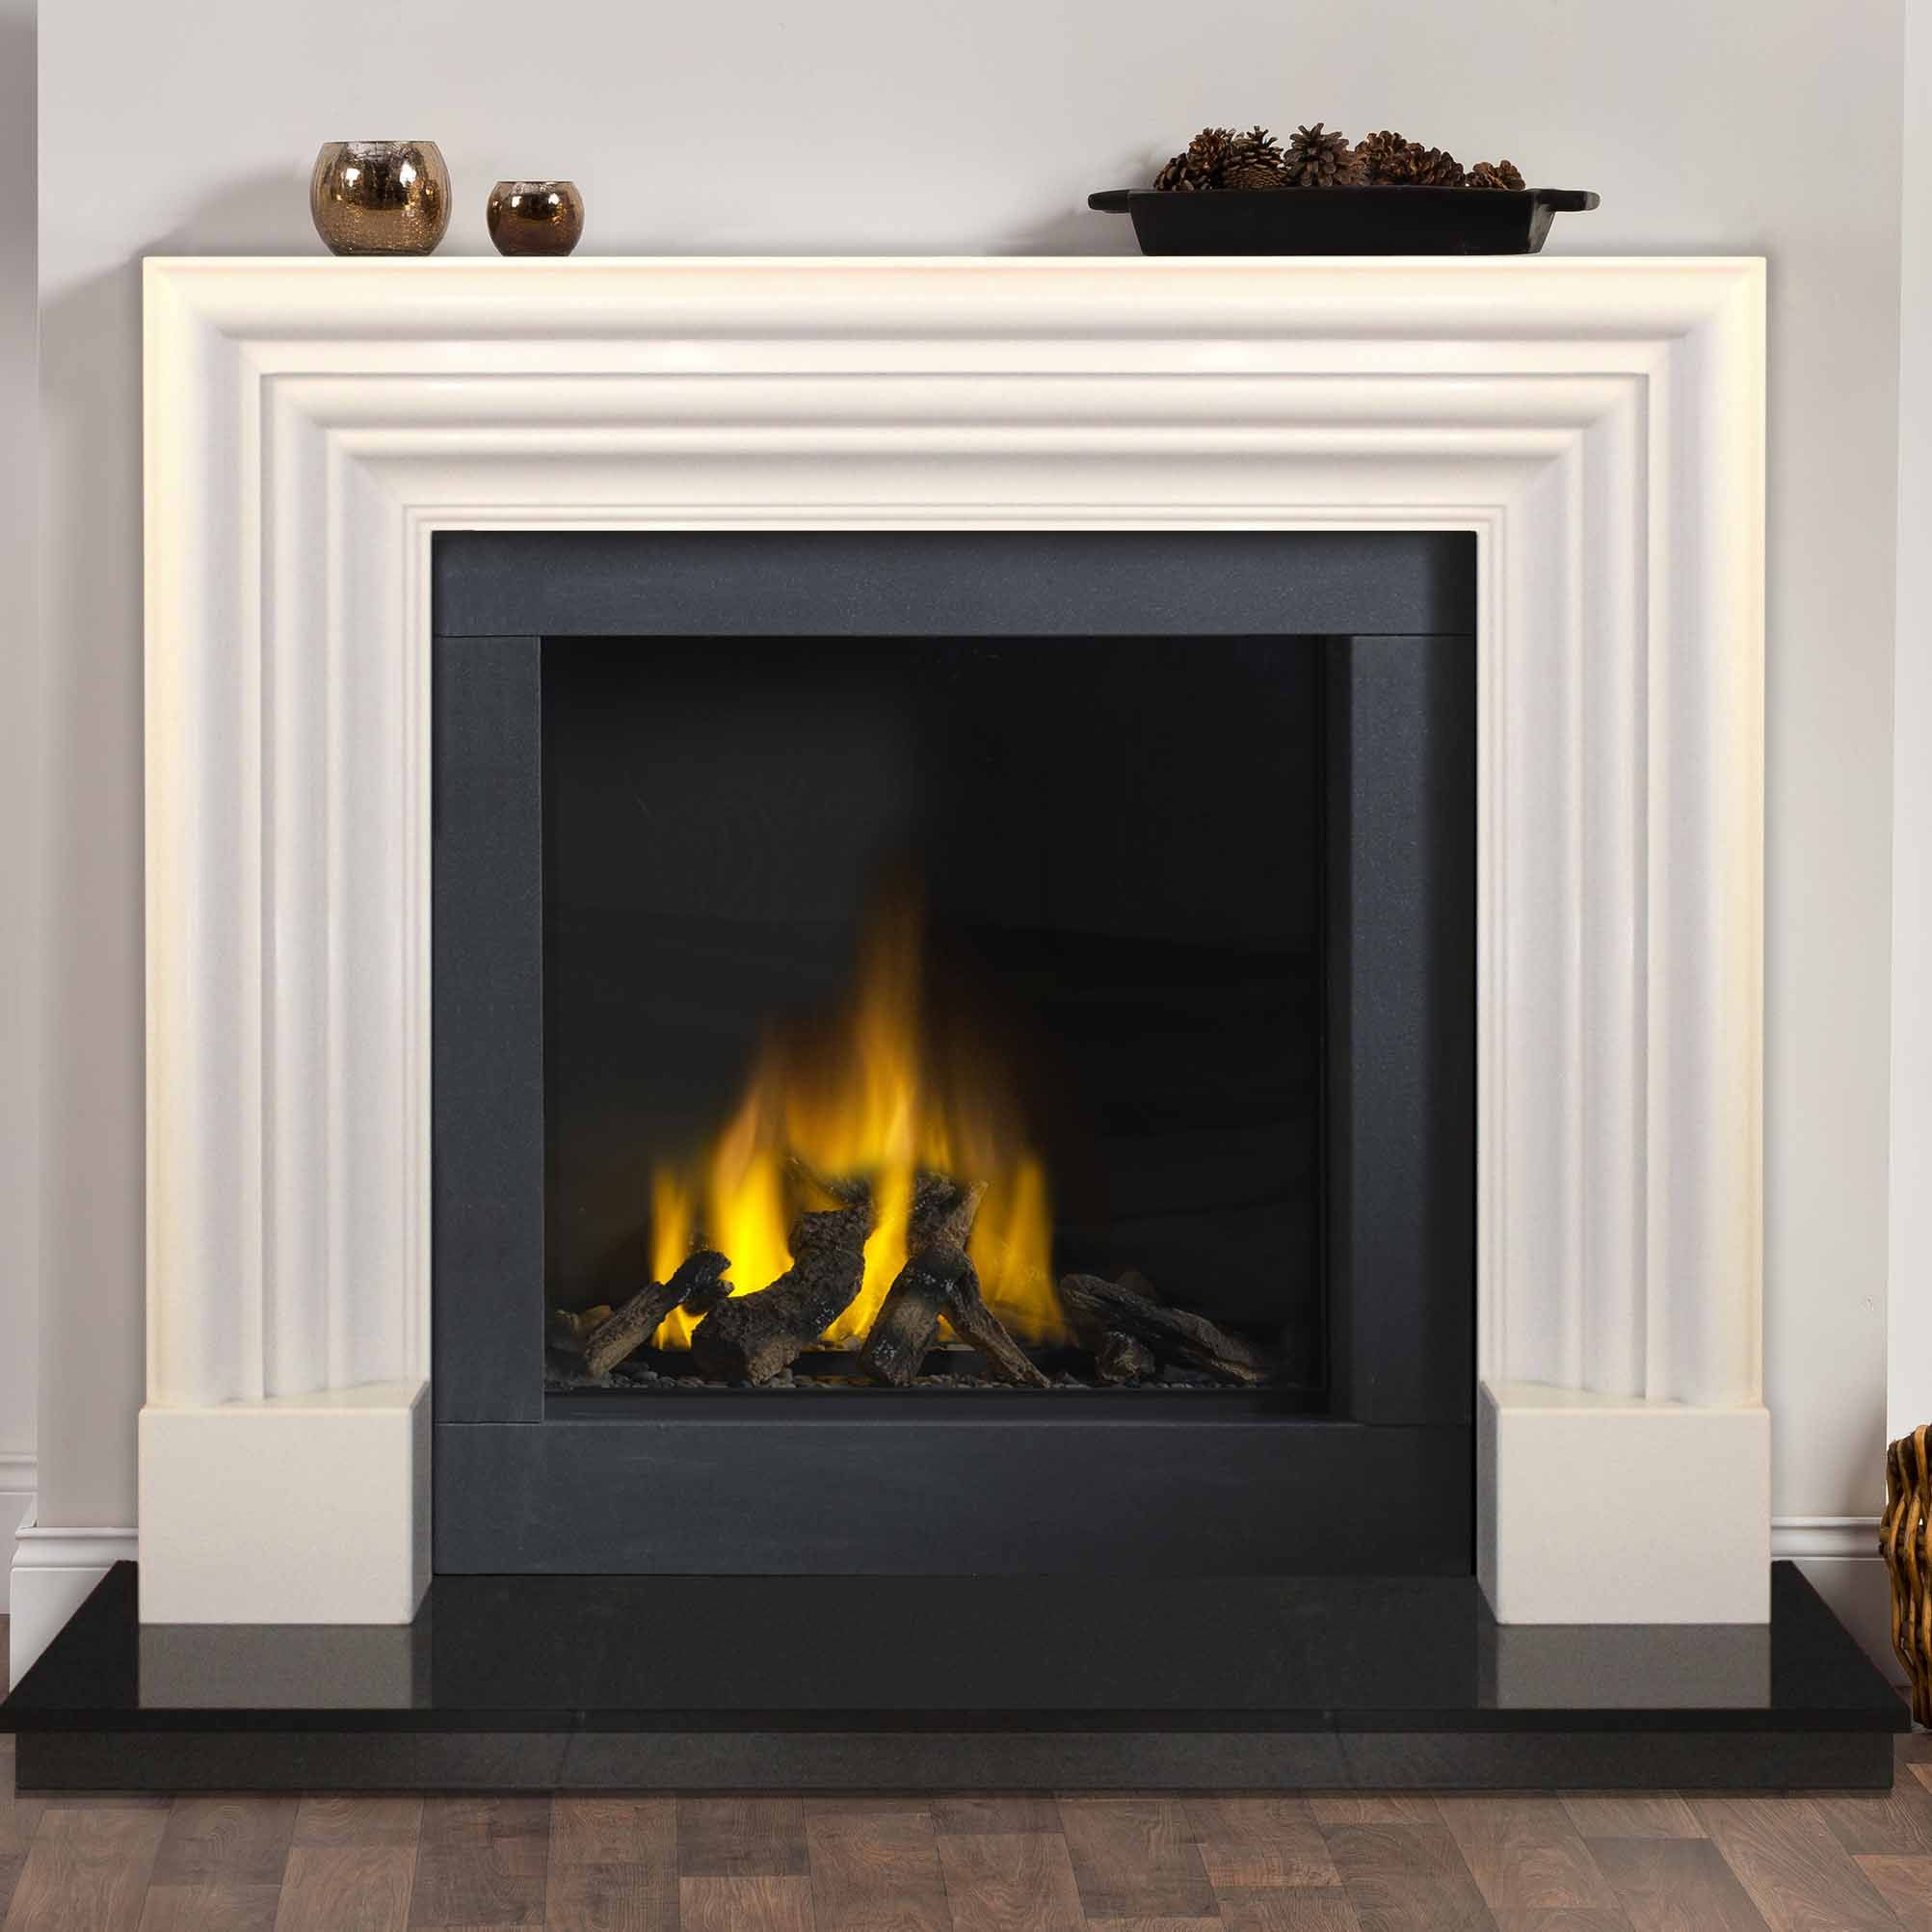 Adare Ivory Pearl Surround Pictured With A Black Granite Hearth Honed Slips And Tl60cf Vision Trimline Gas Fire Fireplace Granite Hearth Design